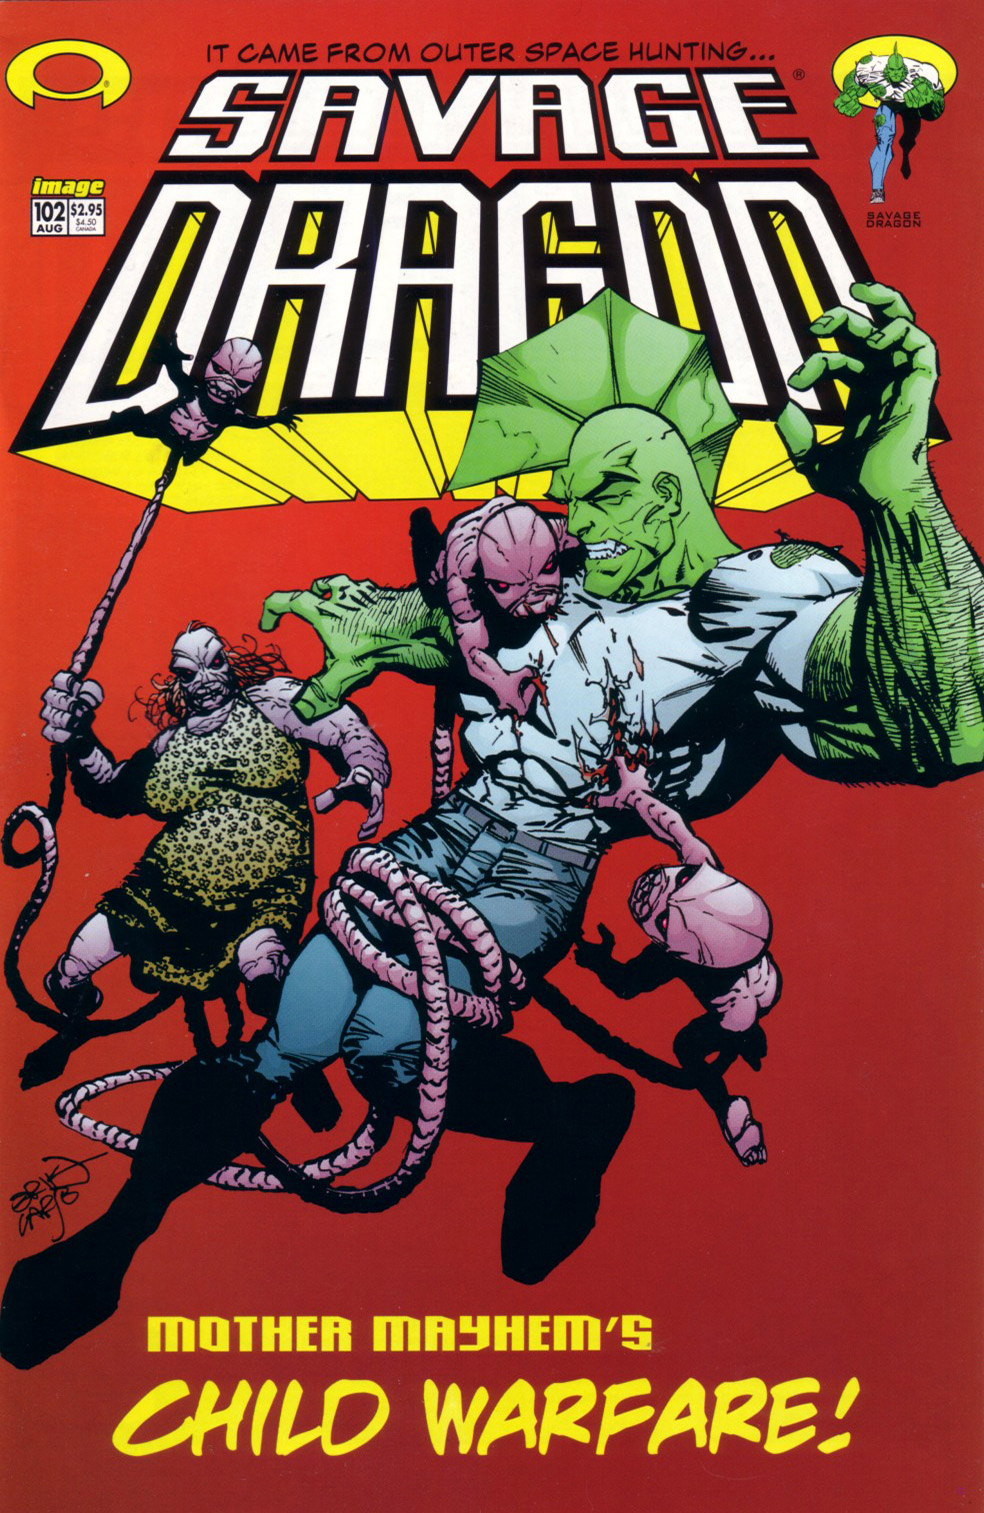 Cover Savage Dragon Vol.2 #102